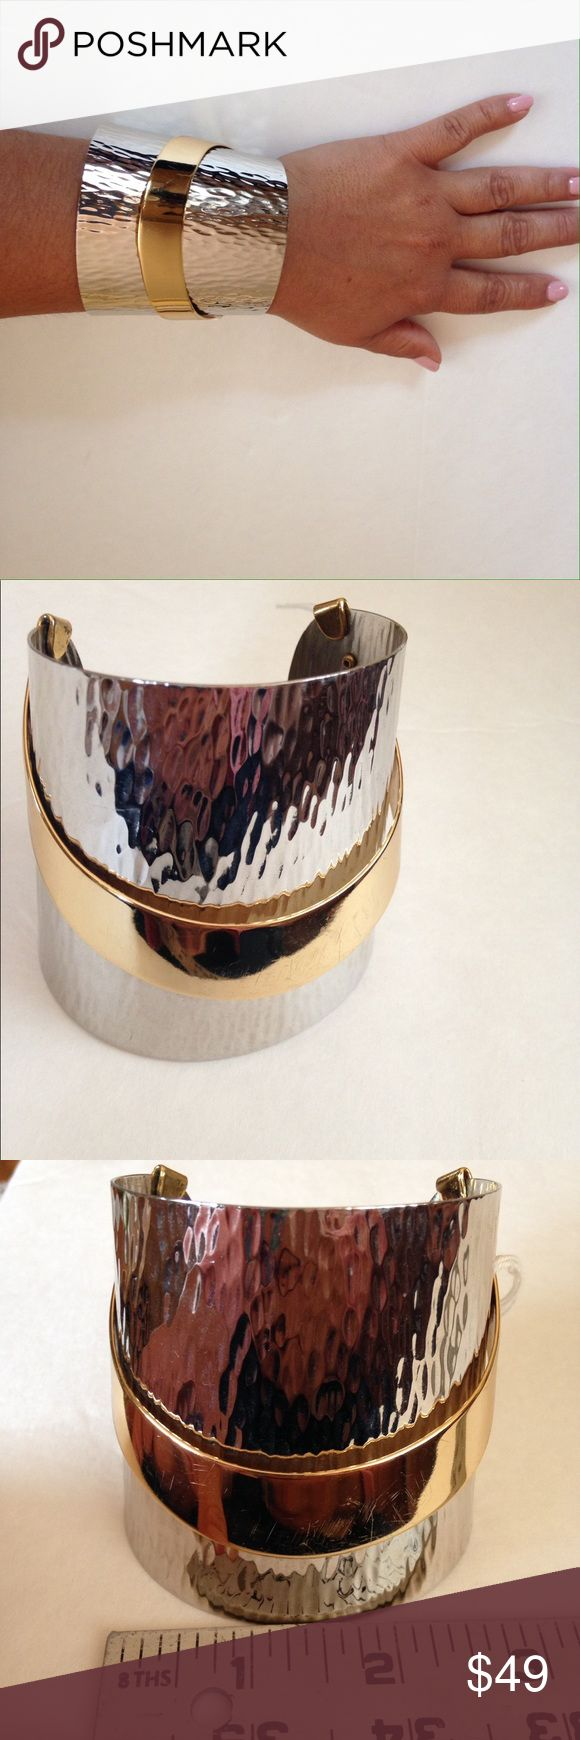 Signed vintage Napier cuff Gorgeous 2 toned cuff. In great condition.  Bundle and save. No holds no trades. Please use offer to negotiate. Napier Jewelry Bracelets